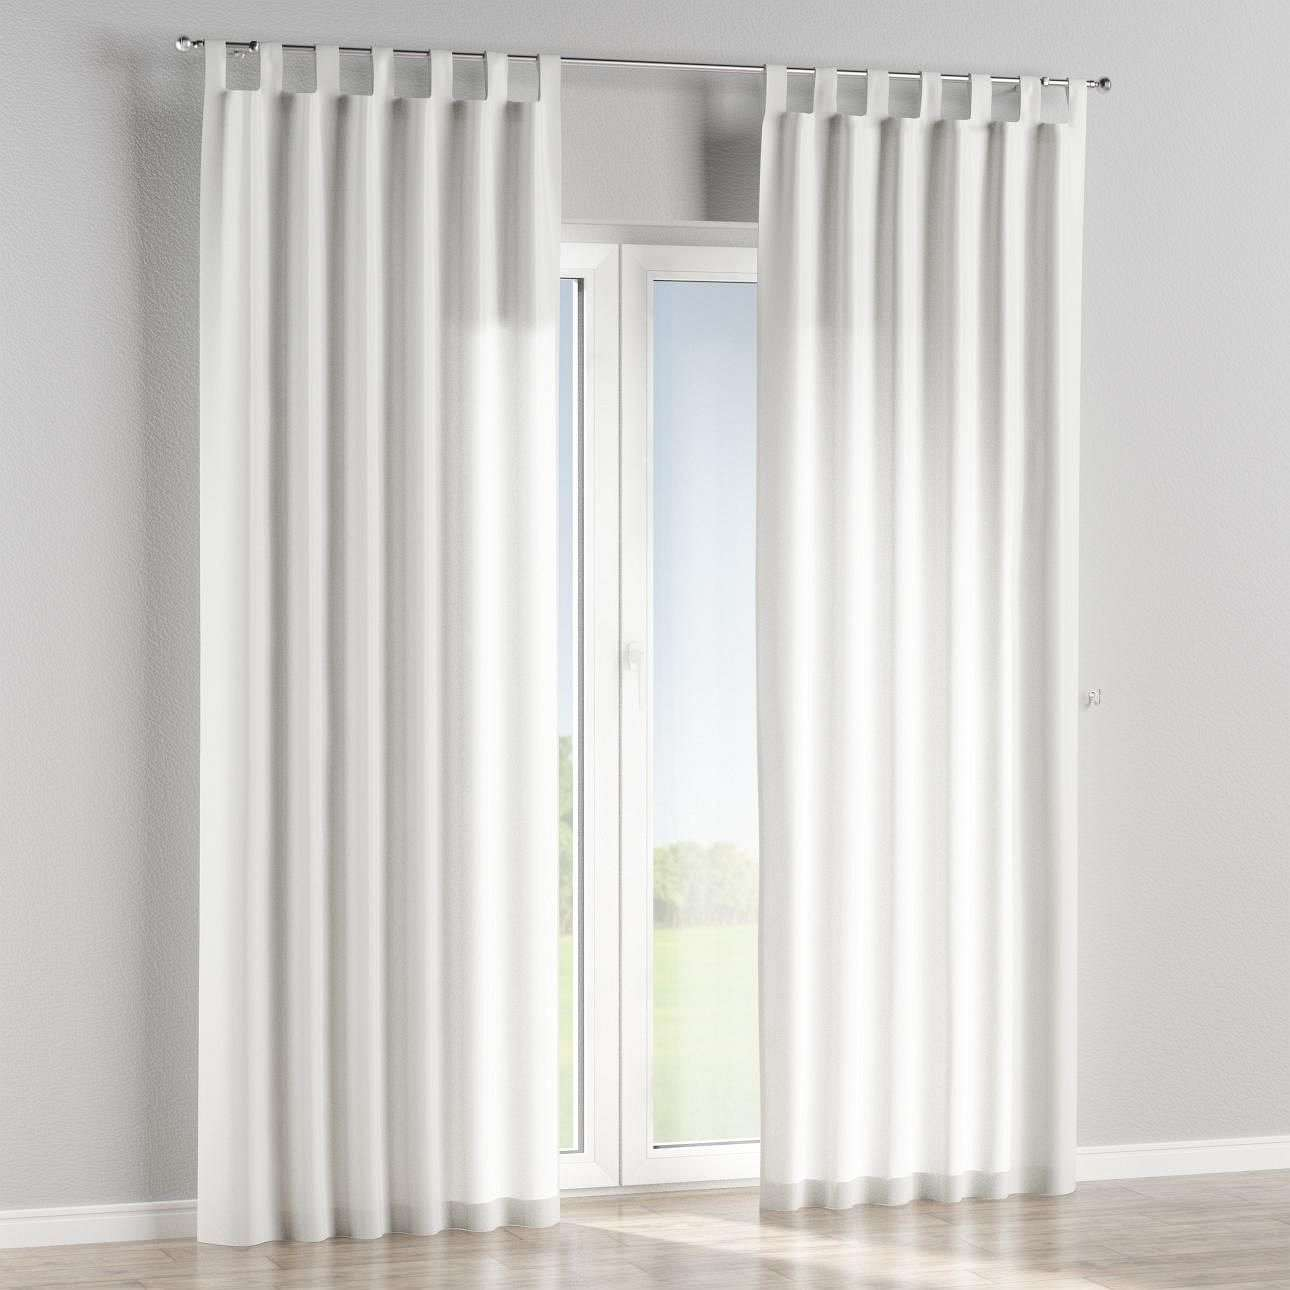 Tab top curtains in collection Milano, fabric: 150-27